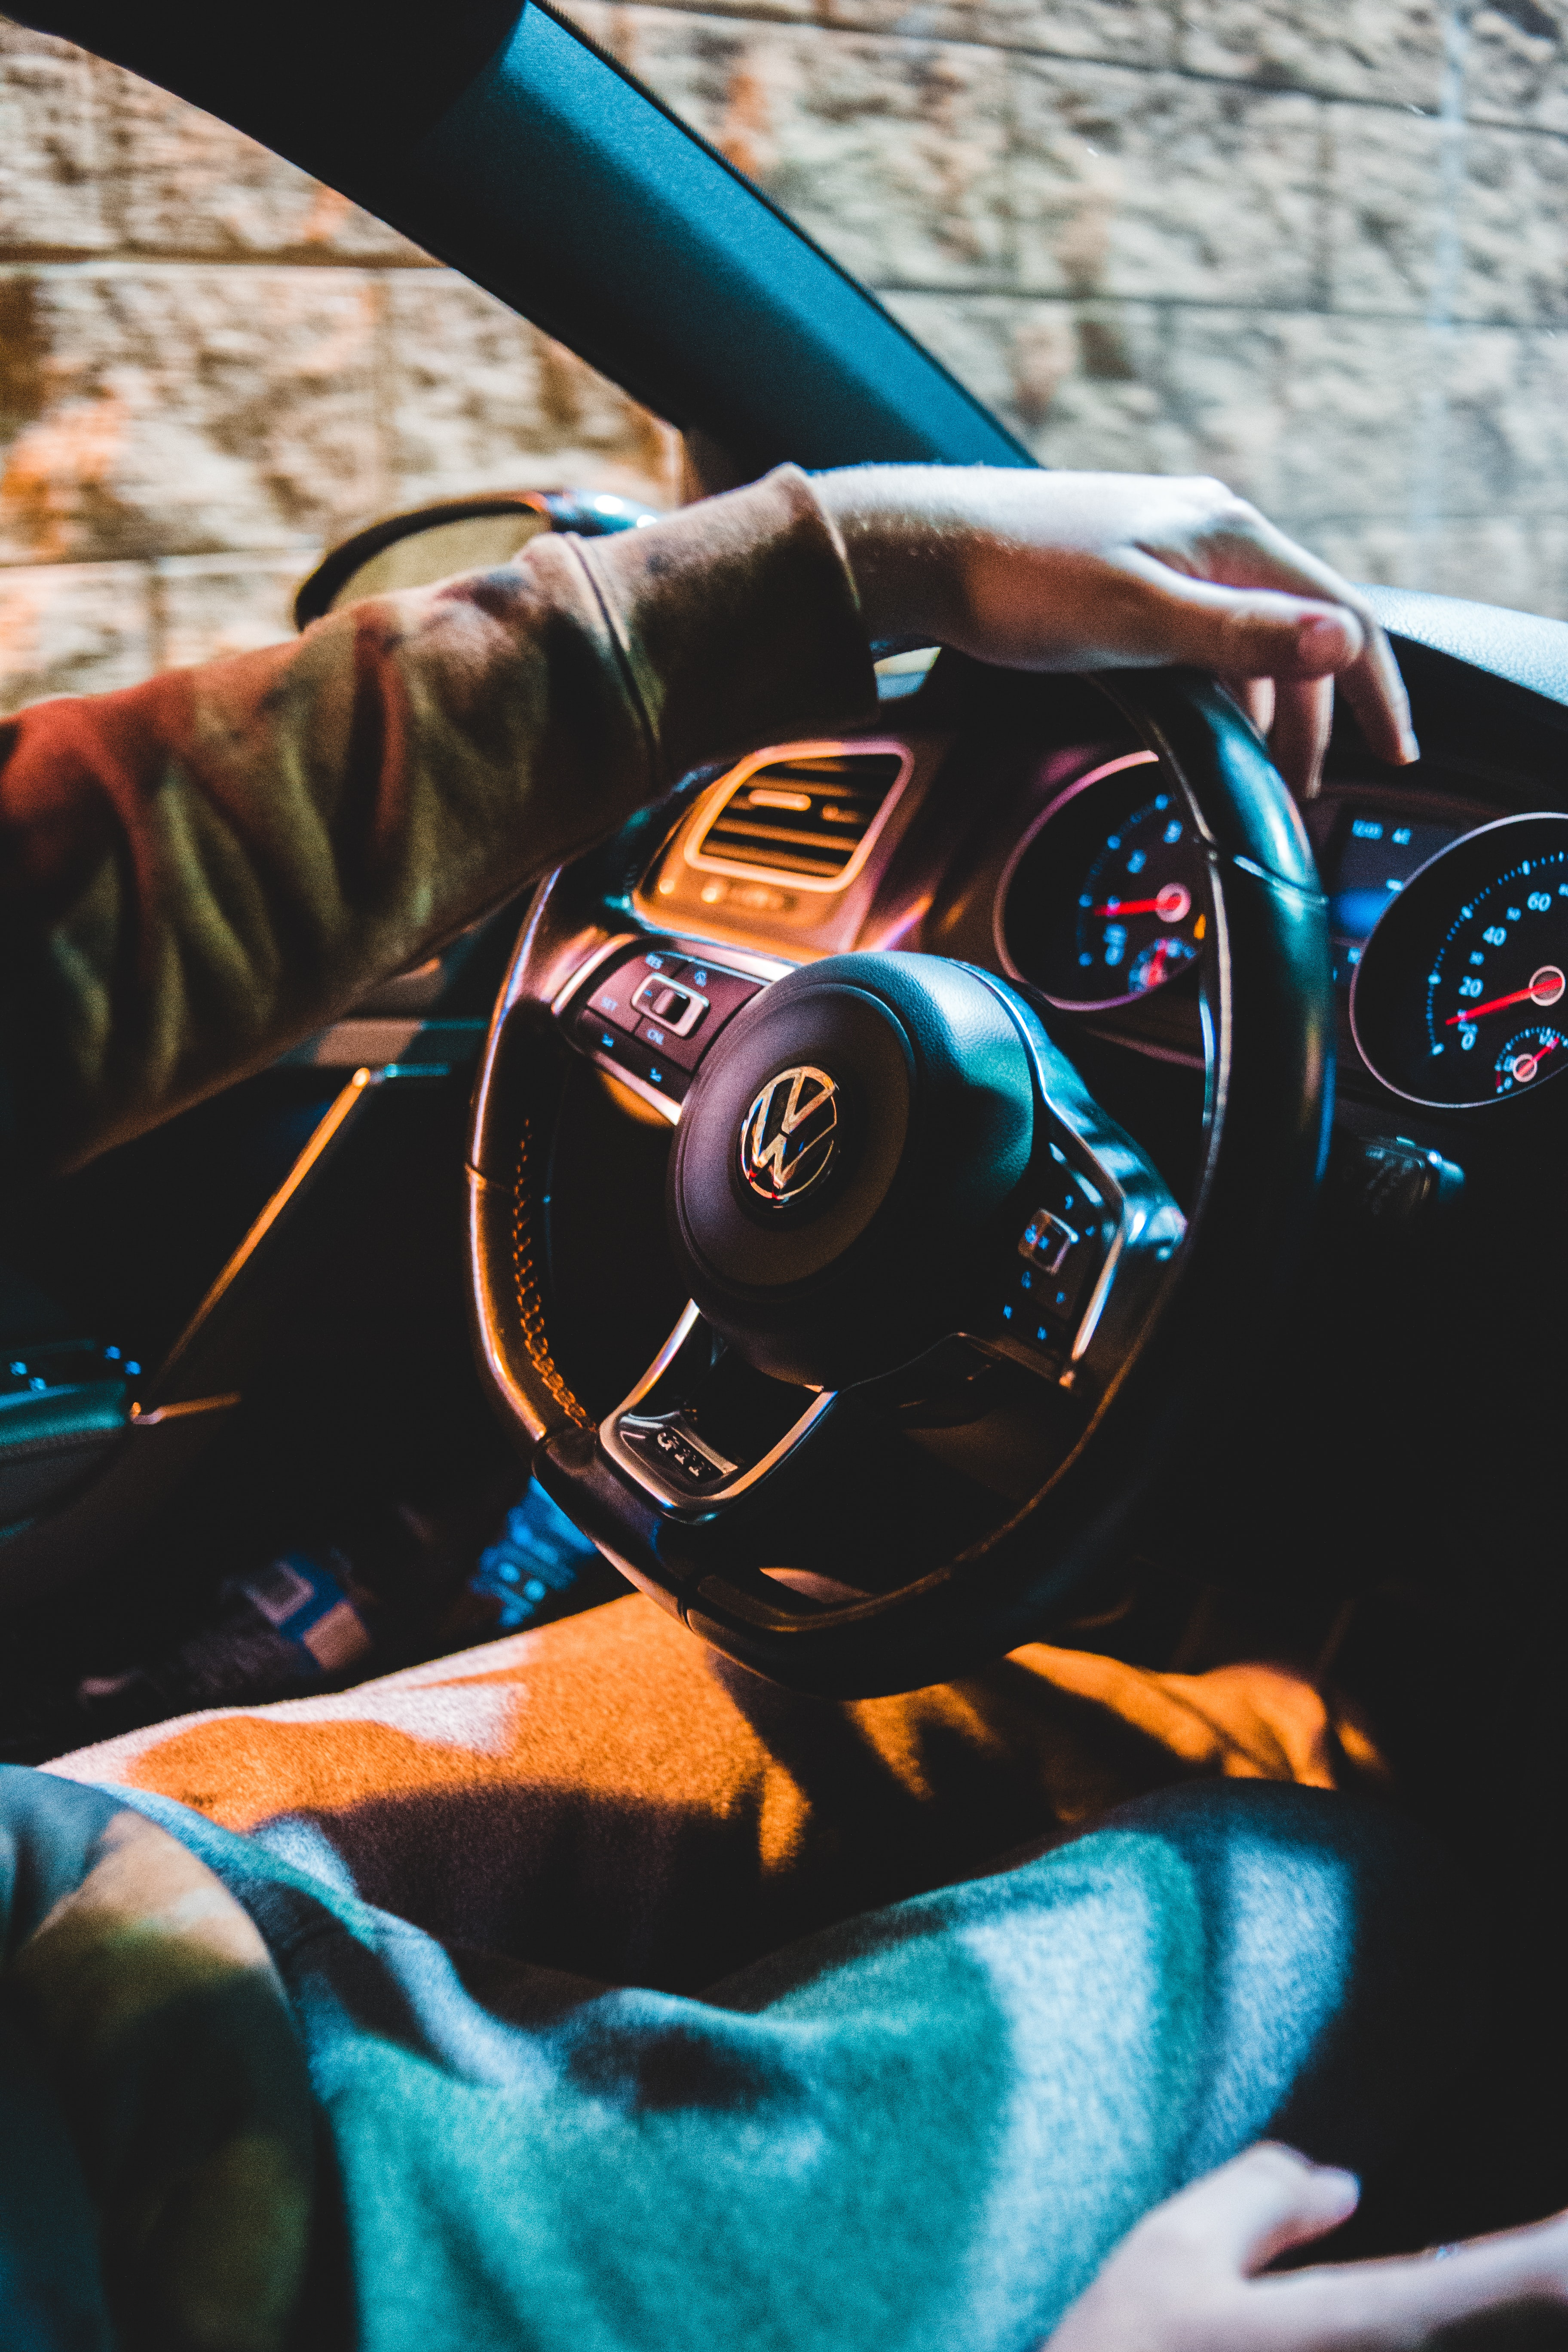 128225 download wallpaper Volkswagen, Cars, Hand, Car, Machine, Steering Wheel, Rudder, Salon screensavers and pictures for free